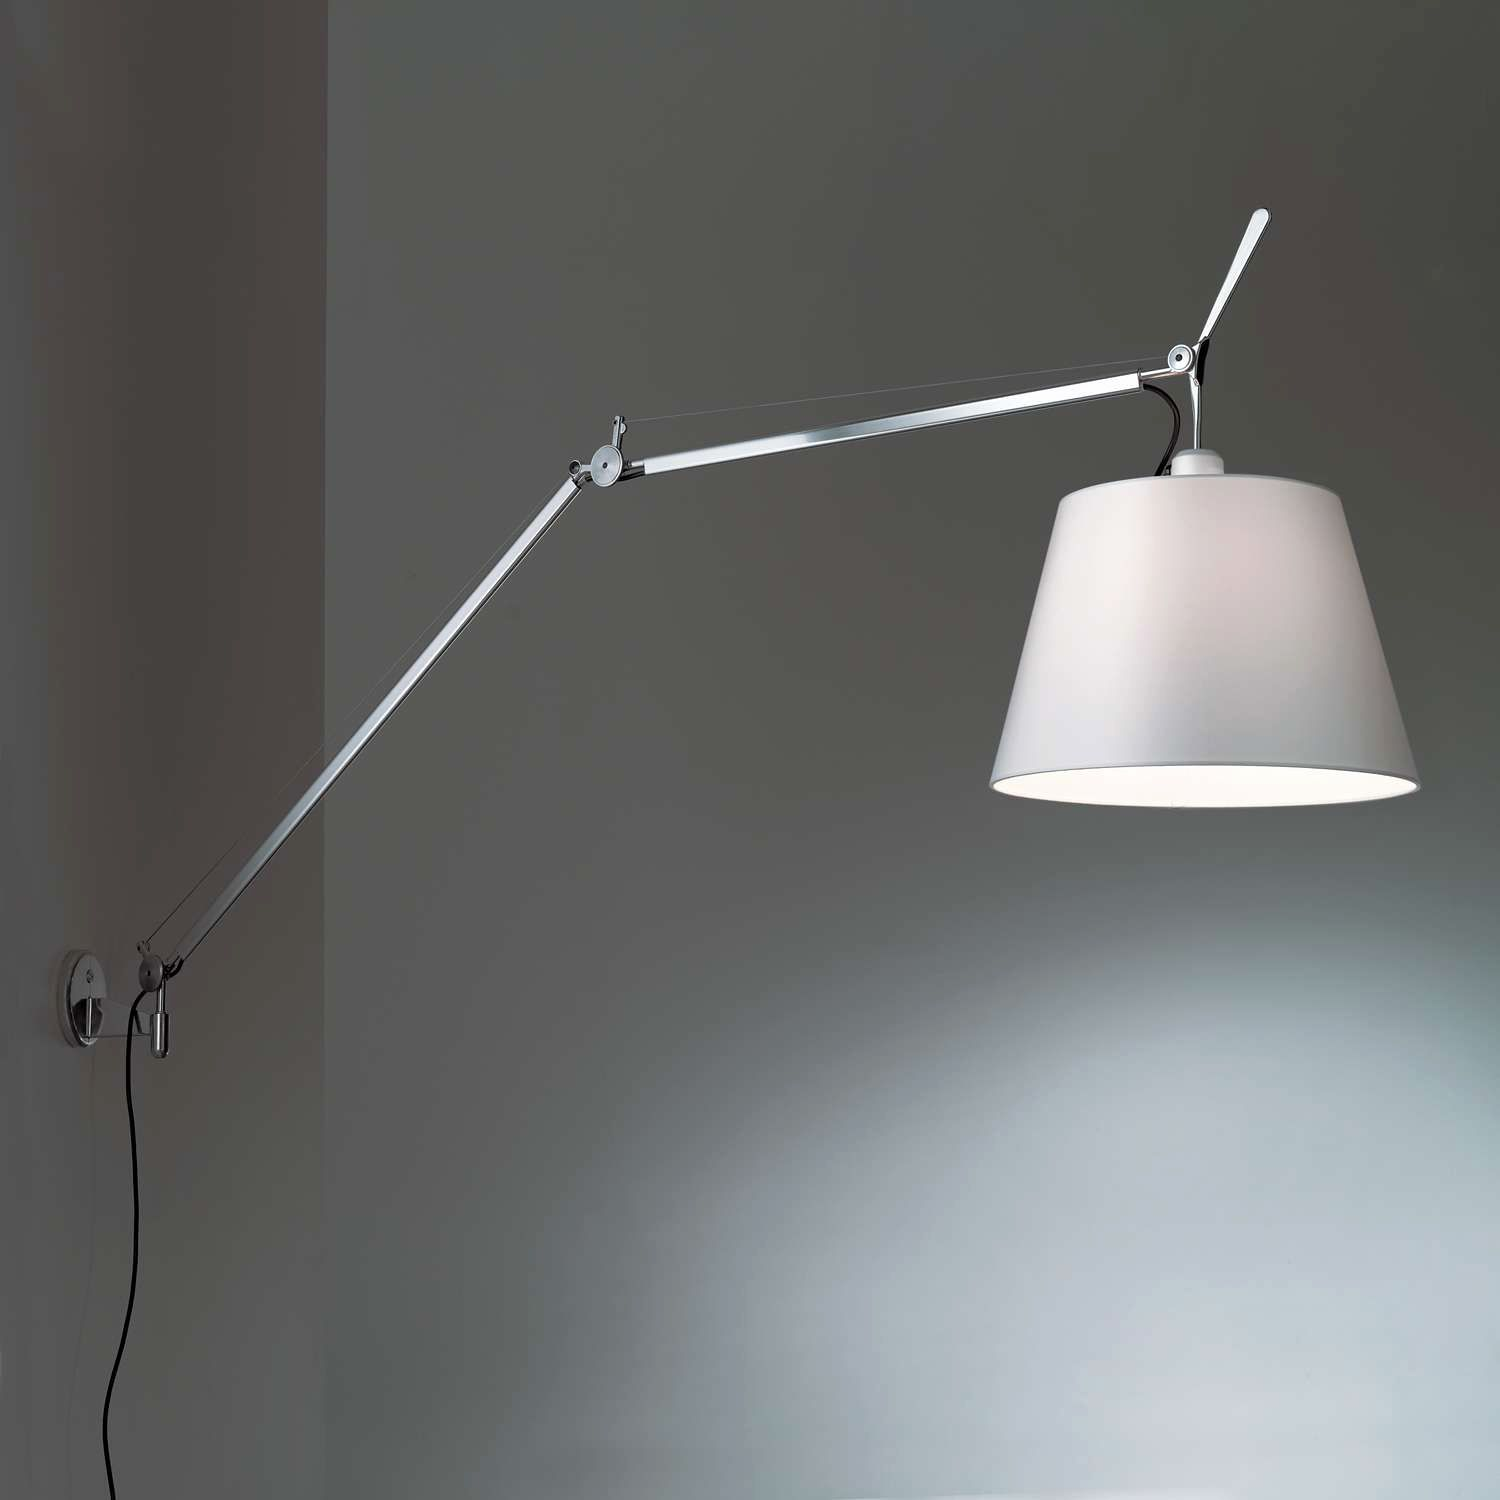 Lamp Lighting Tolomeo Lamp Artemide Pirce Artemide Floor Lamp Modern Office Lighting Lamp Tolomeo Lamp